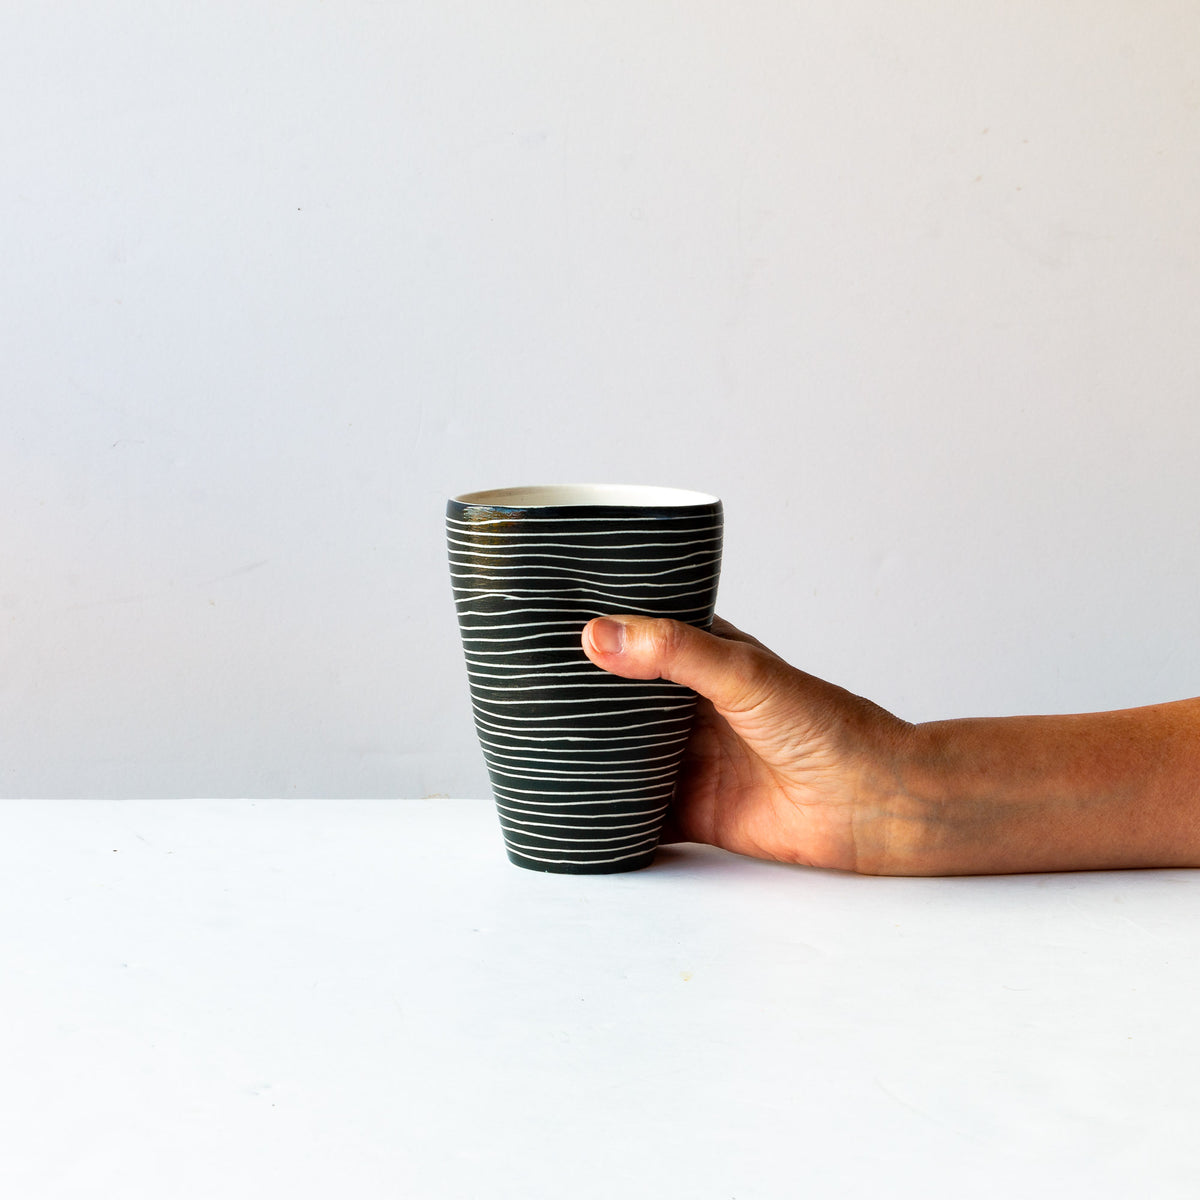 Striped Large Black & Wwite Porcelain Tumbler - Sold by Chic & Basta